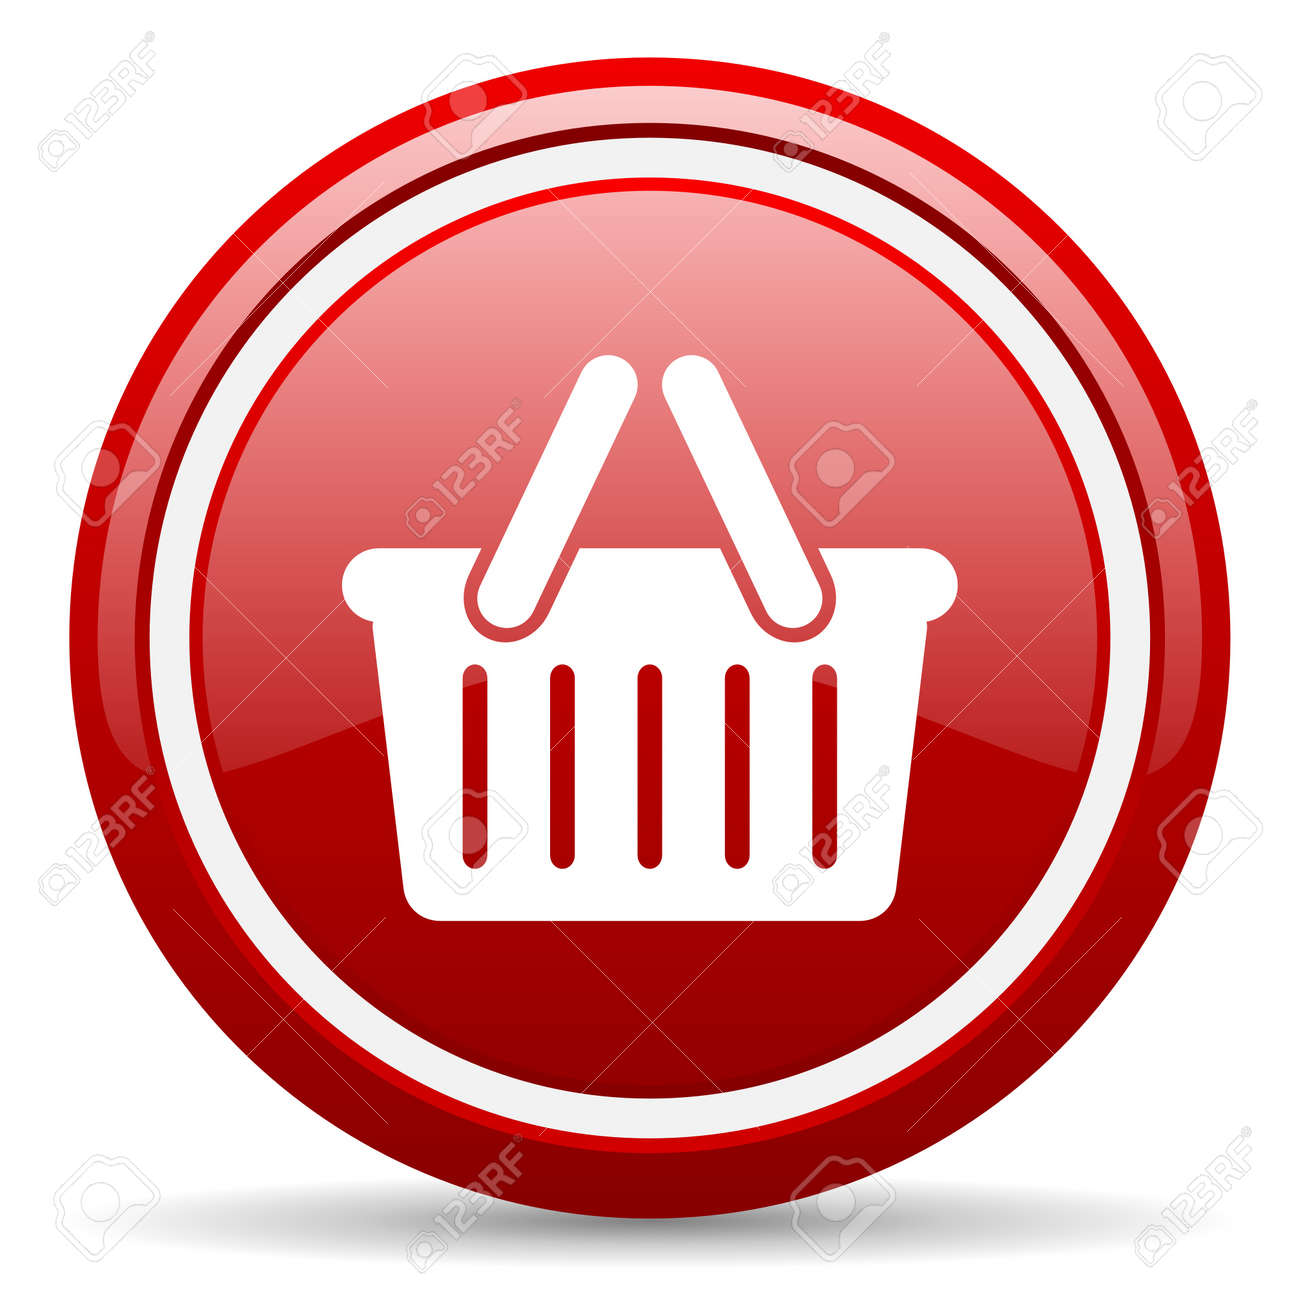 red circle glossy web icon with pictogram on white background Stock Photo - 17318444